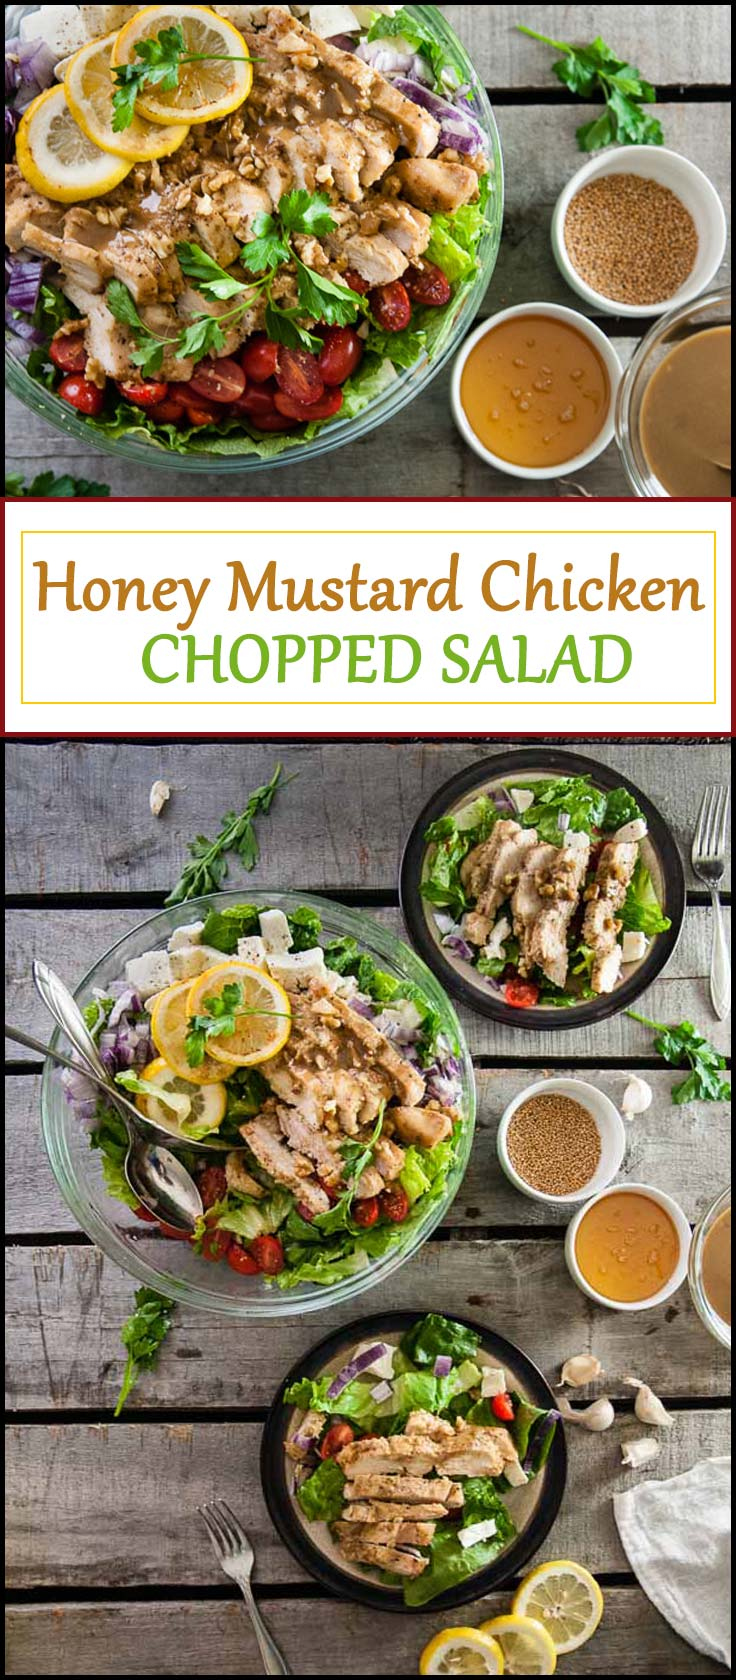 Honey Mustard Chicken Chopped Salad is a flavorful, healthy chicken recipe that tastes delicious over crisp salad for lunch or dinner from www.seasonedsprinkles.com